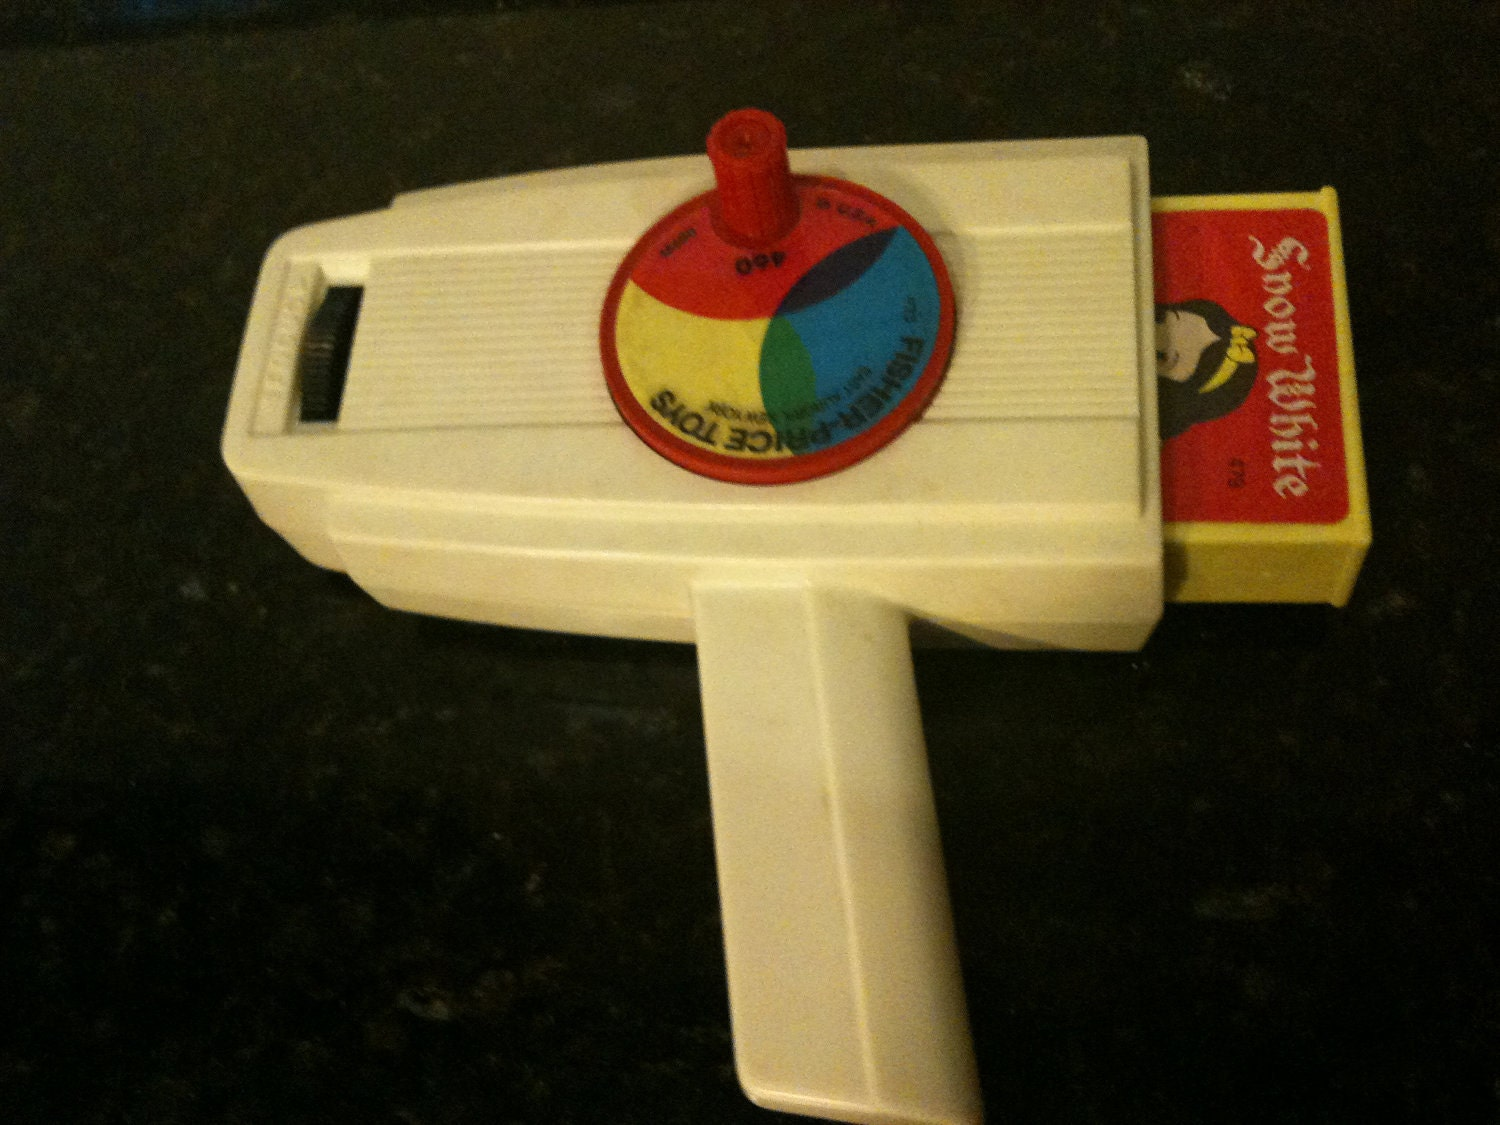 Sale vintage hand held fisher price movie projector for Handheld projector price